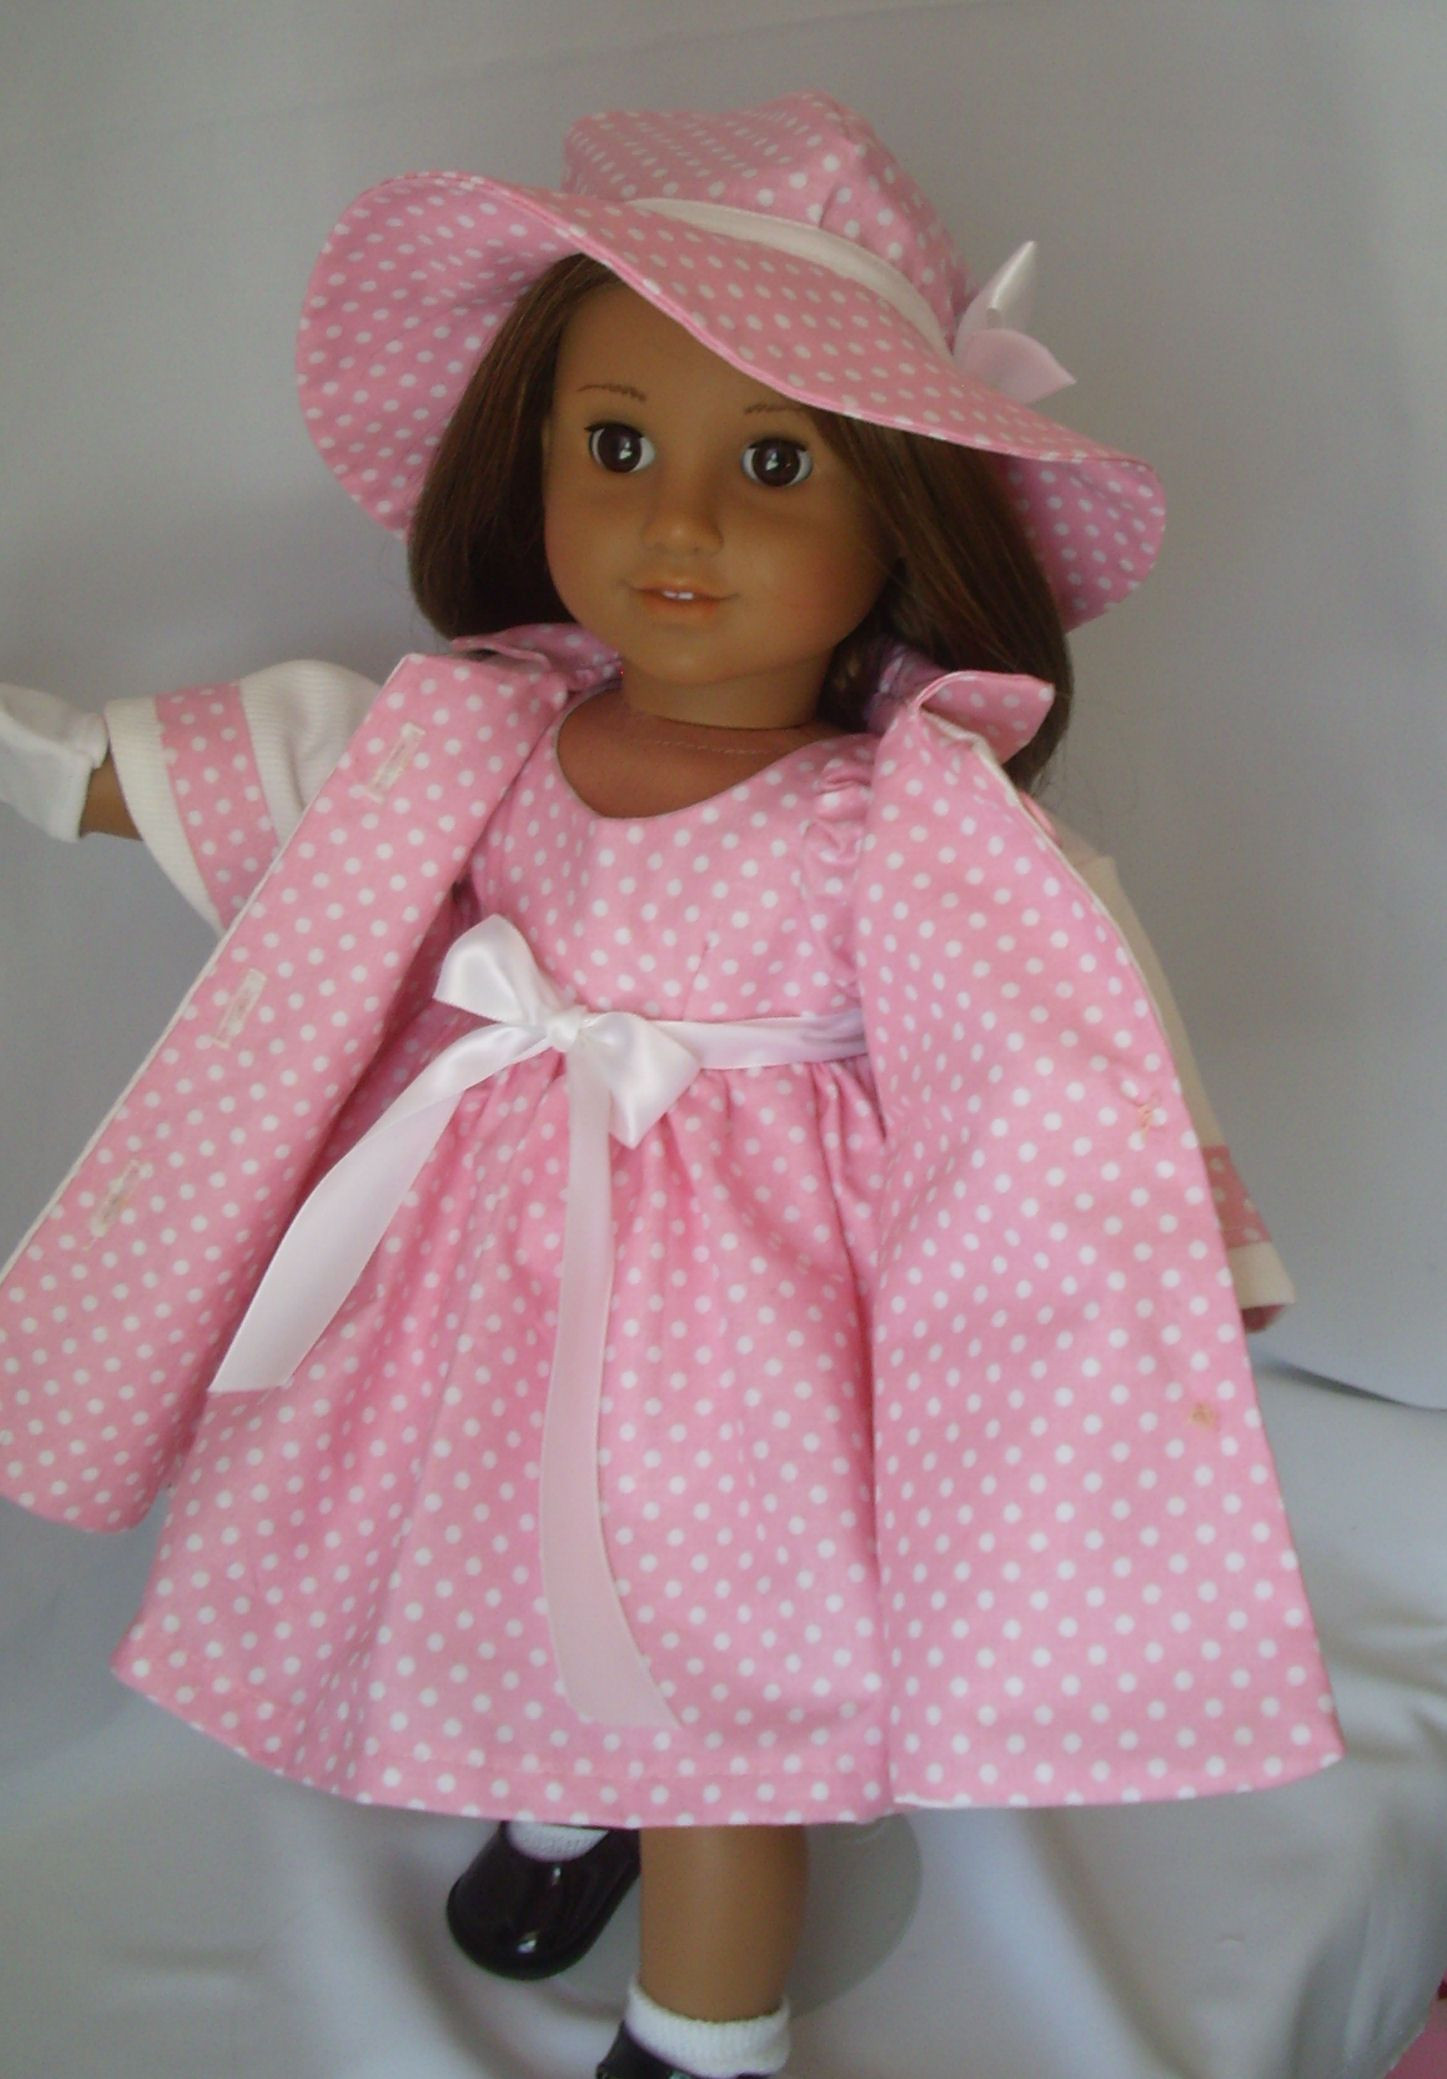 New Doll Clothes American Girls and 18 Inch Doll On Pinterest Free American Girl Doll Clothes Patterns Of Lovely 49 Models Free American Girl Doll Clothes Patterns